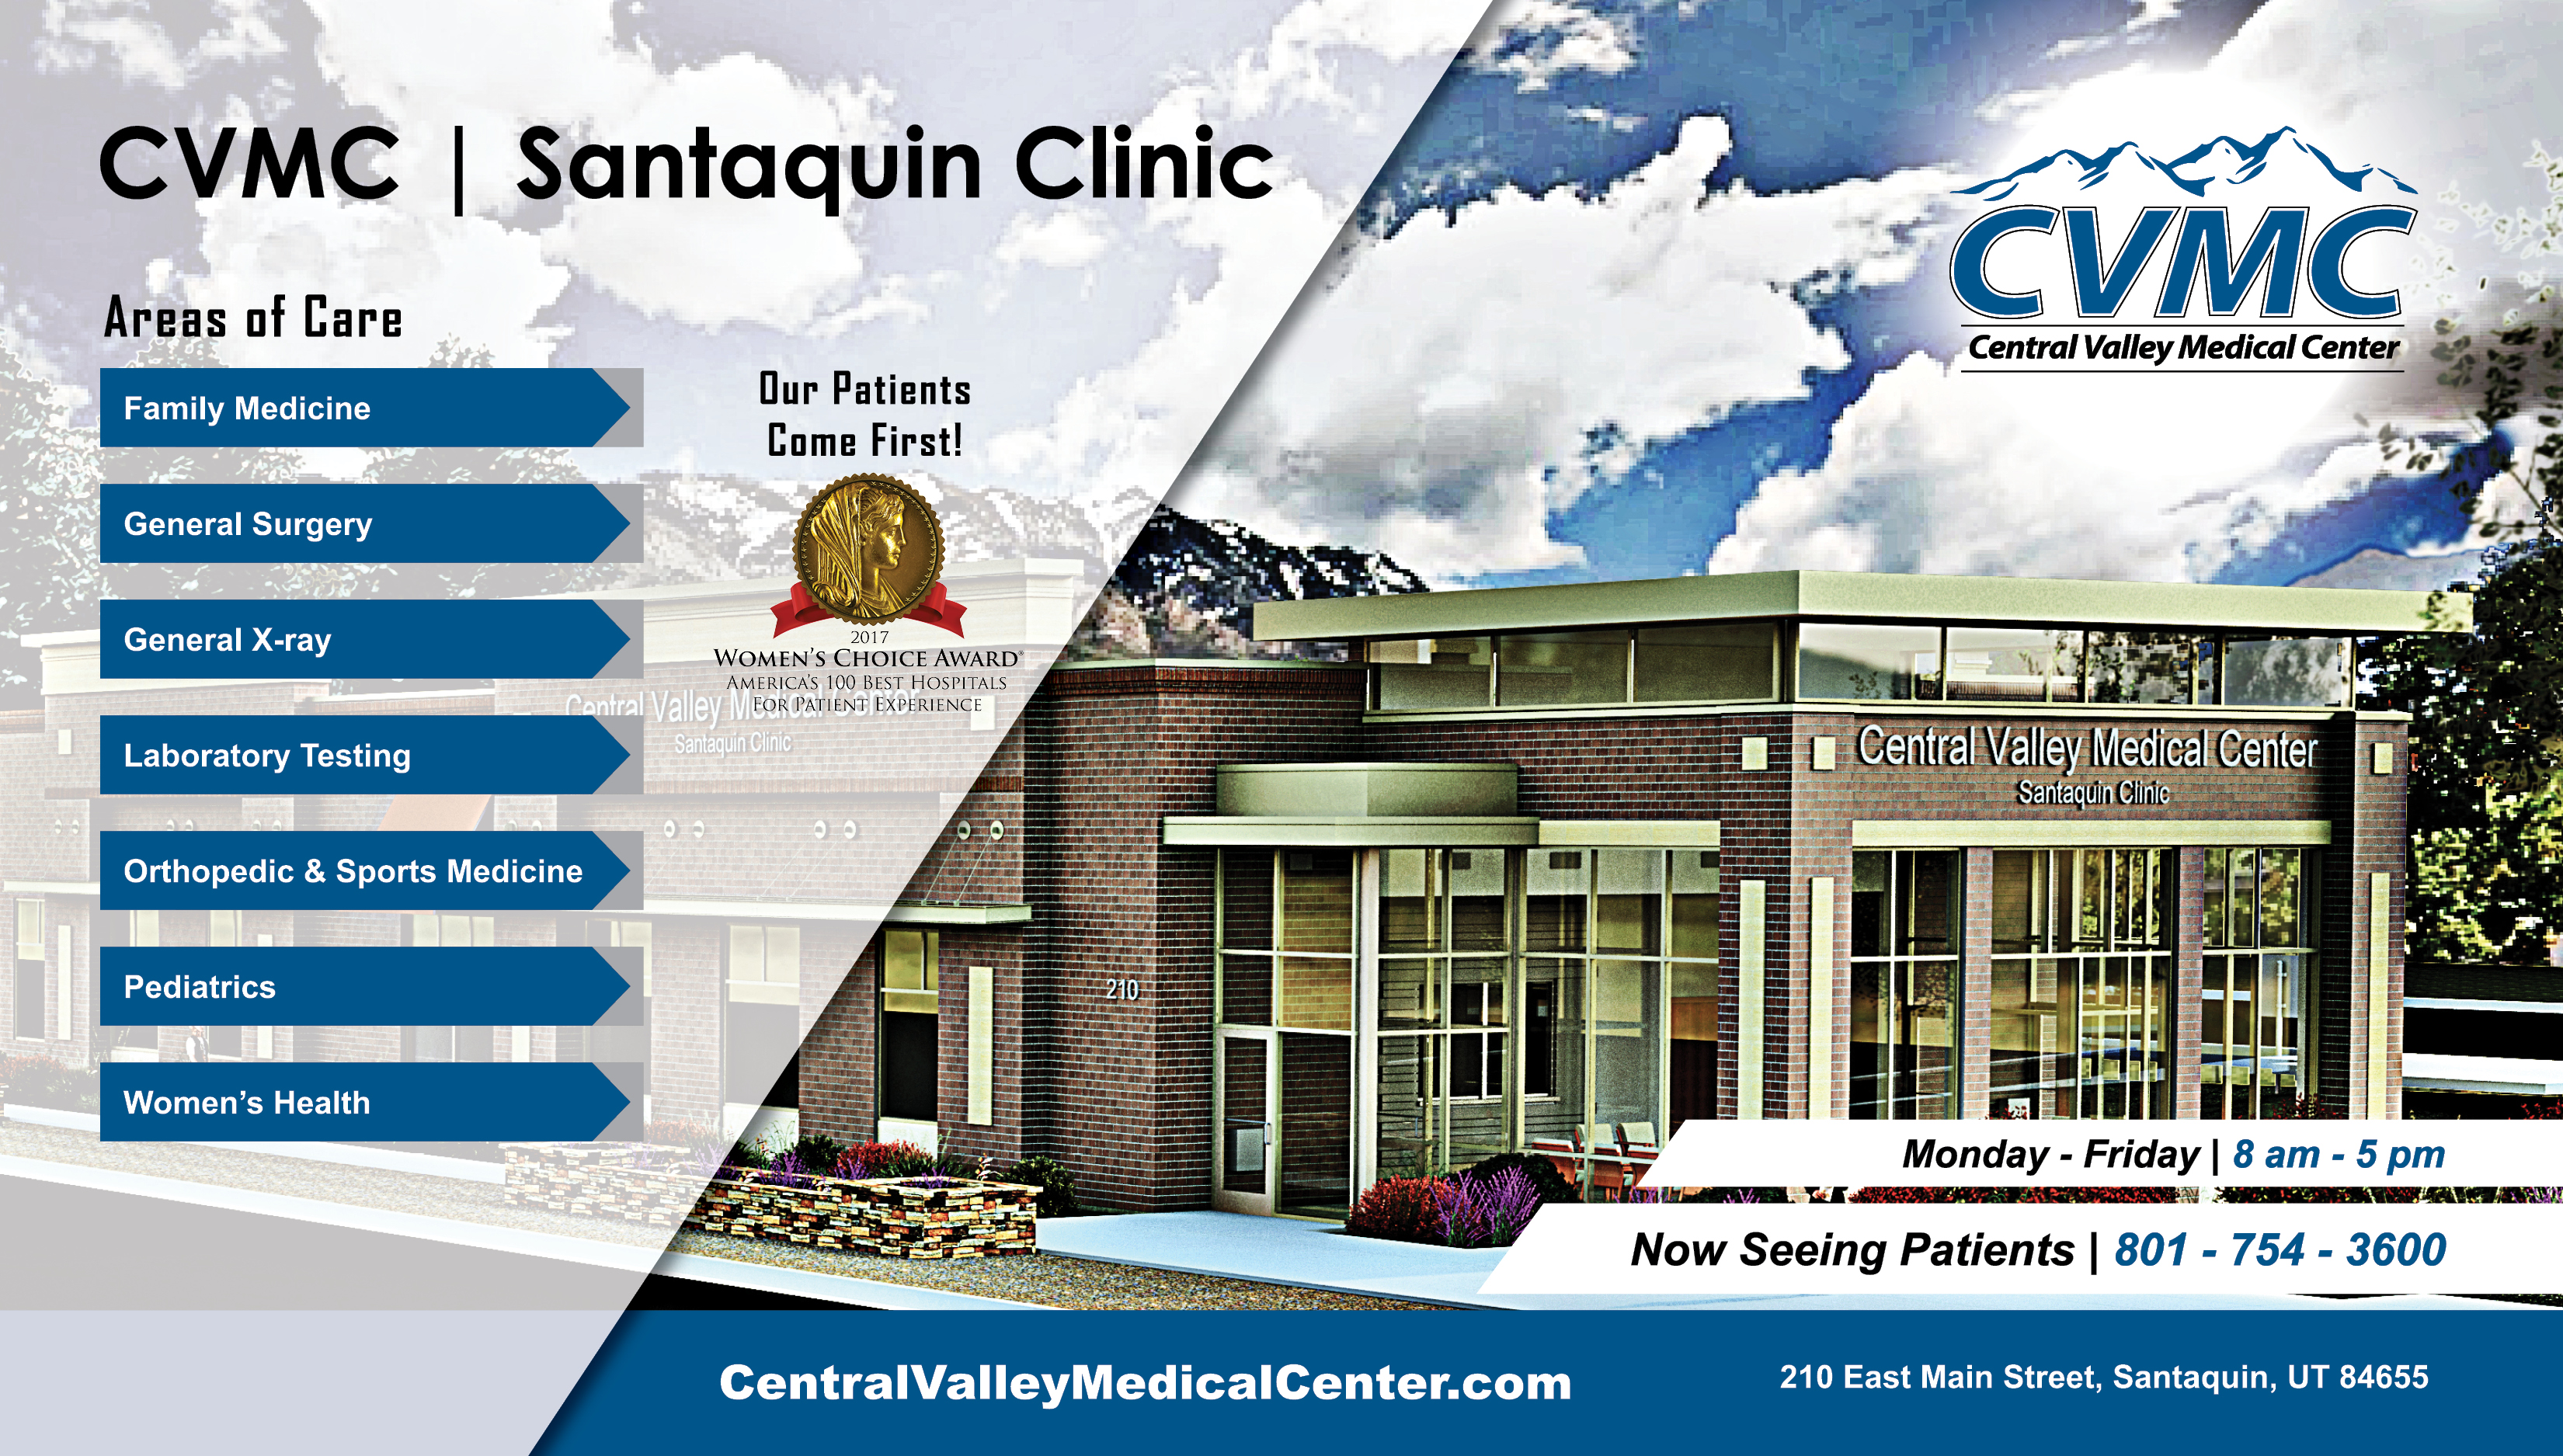 new cvmc santaquin clinic building construction completed